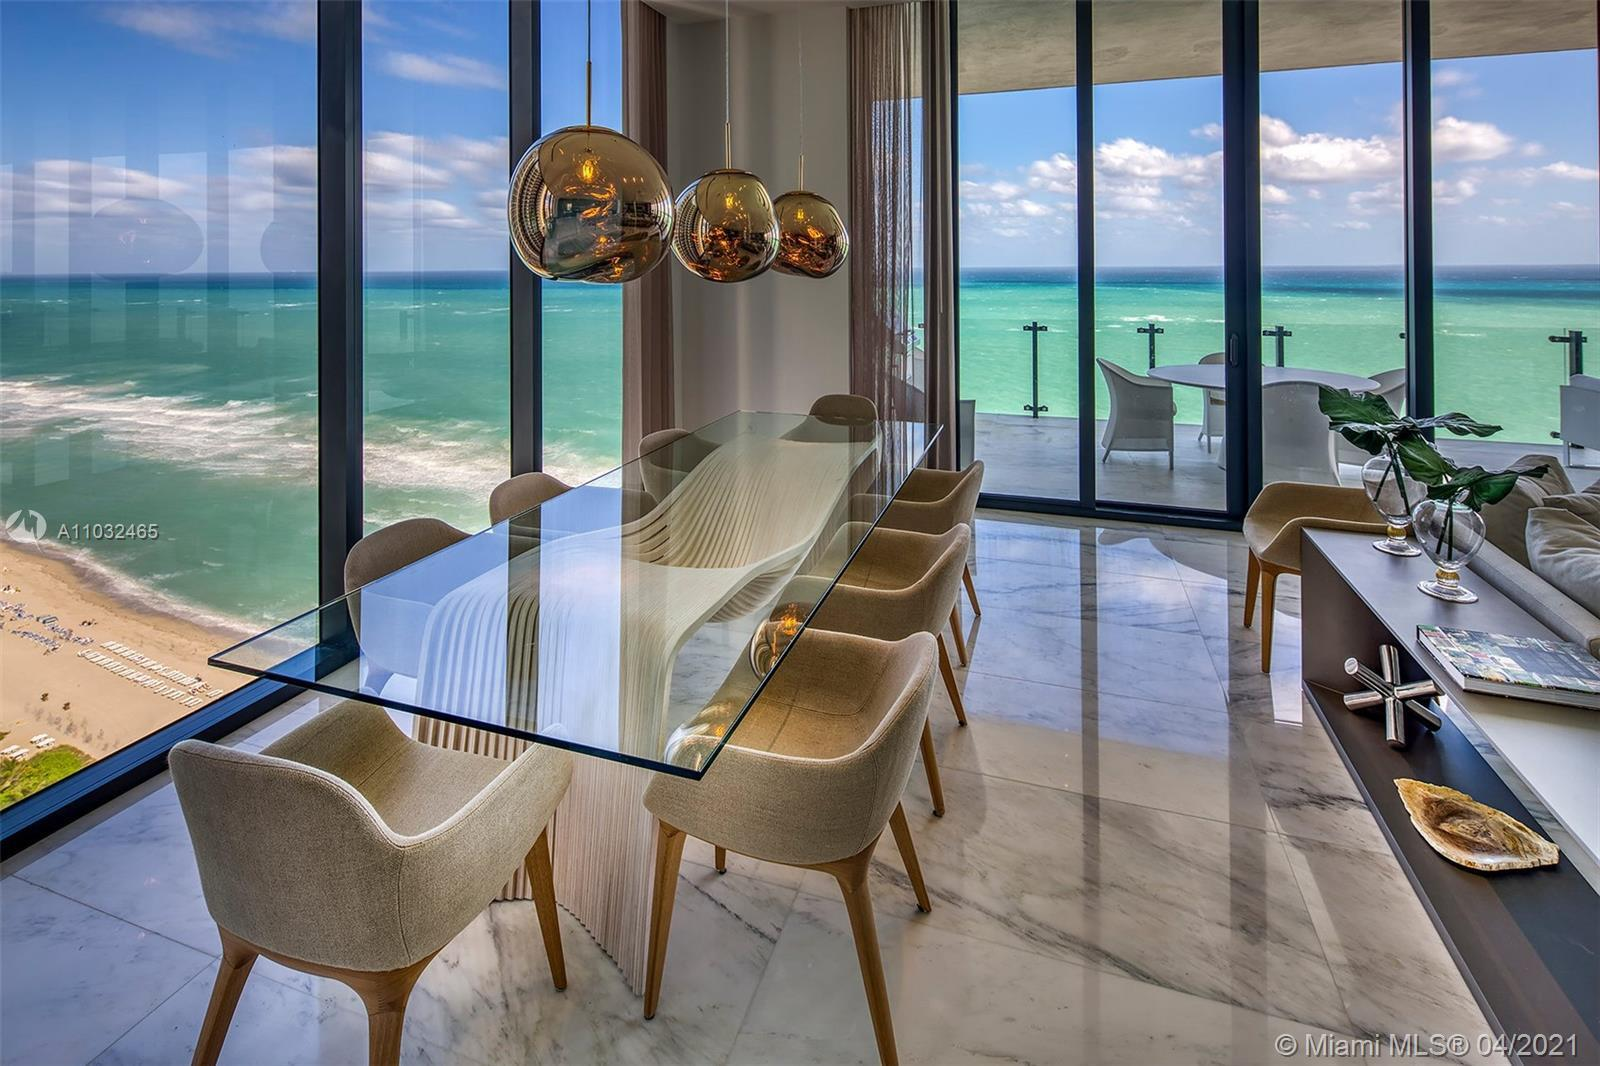 Stunning Ocean Views! Modern Smart Luxury Residence, this converted 4Bed/3 1/2 Baths feature high-te